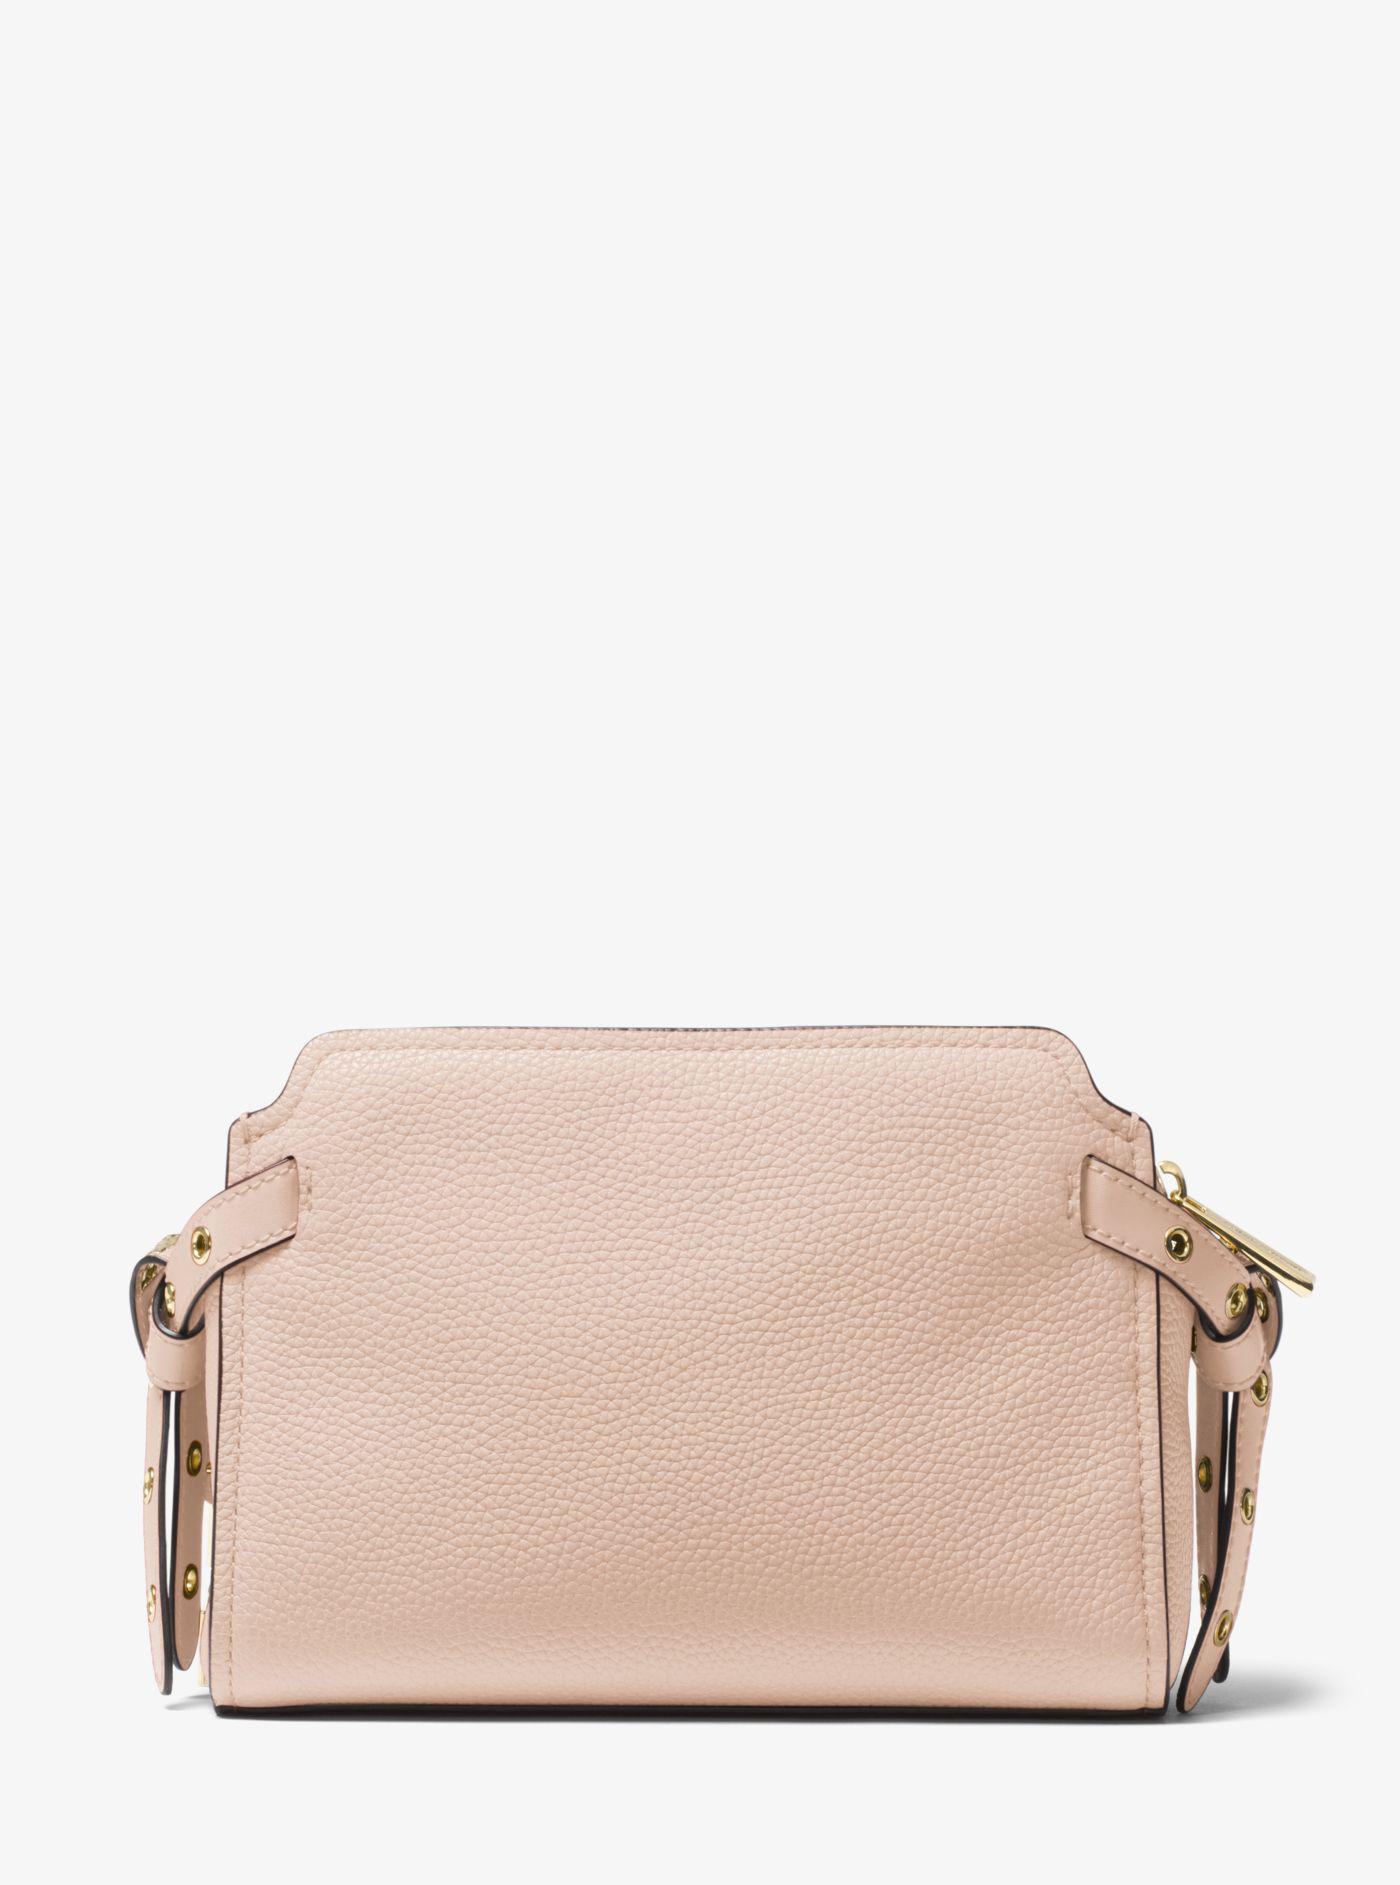 96f7eb23abd82 Lyst - Michael Kors Bristol Leather Crossbody in Pink